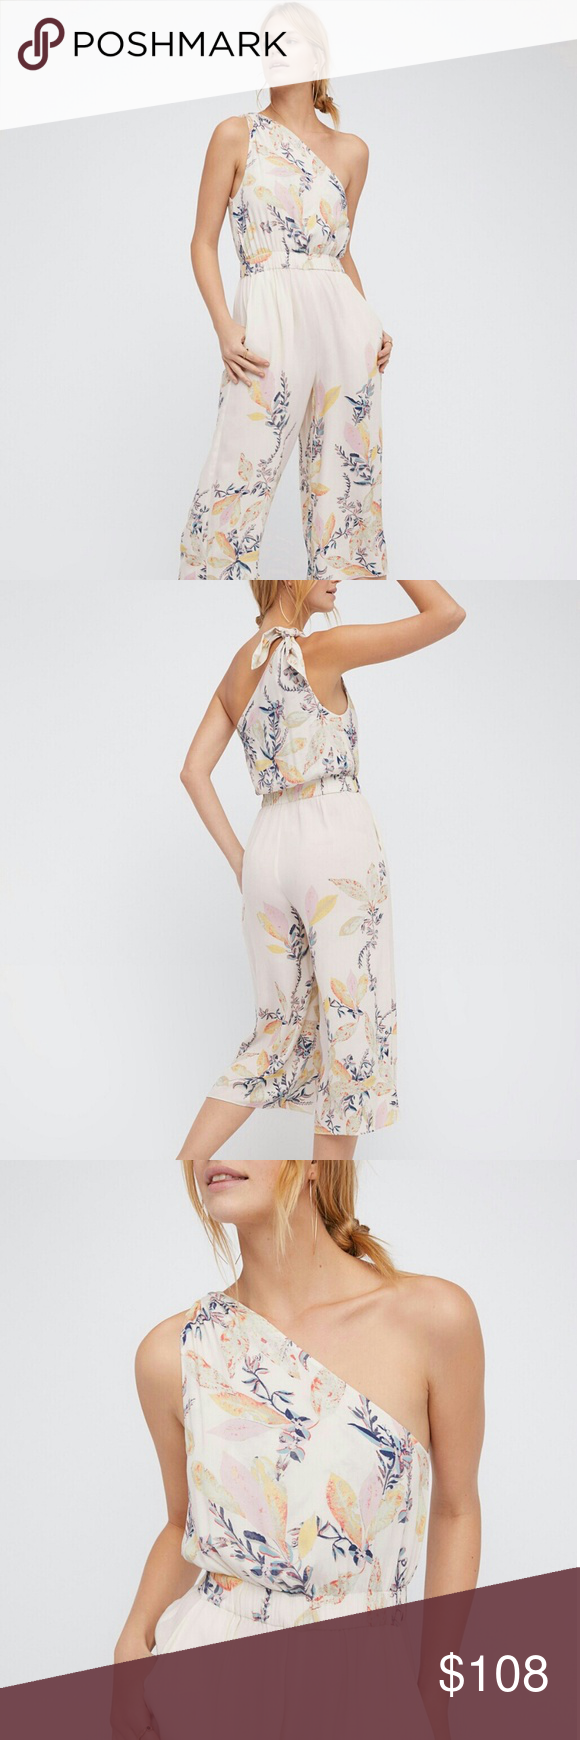 Free People Romper Sz L, NWT, pink color. Adjustable knotted one side design. Elasticized band at waist. Has pockets, unlined. Free People Pants Jumpsuits & Rompers